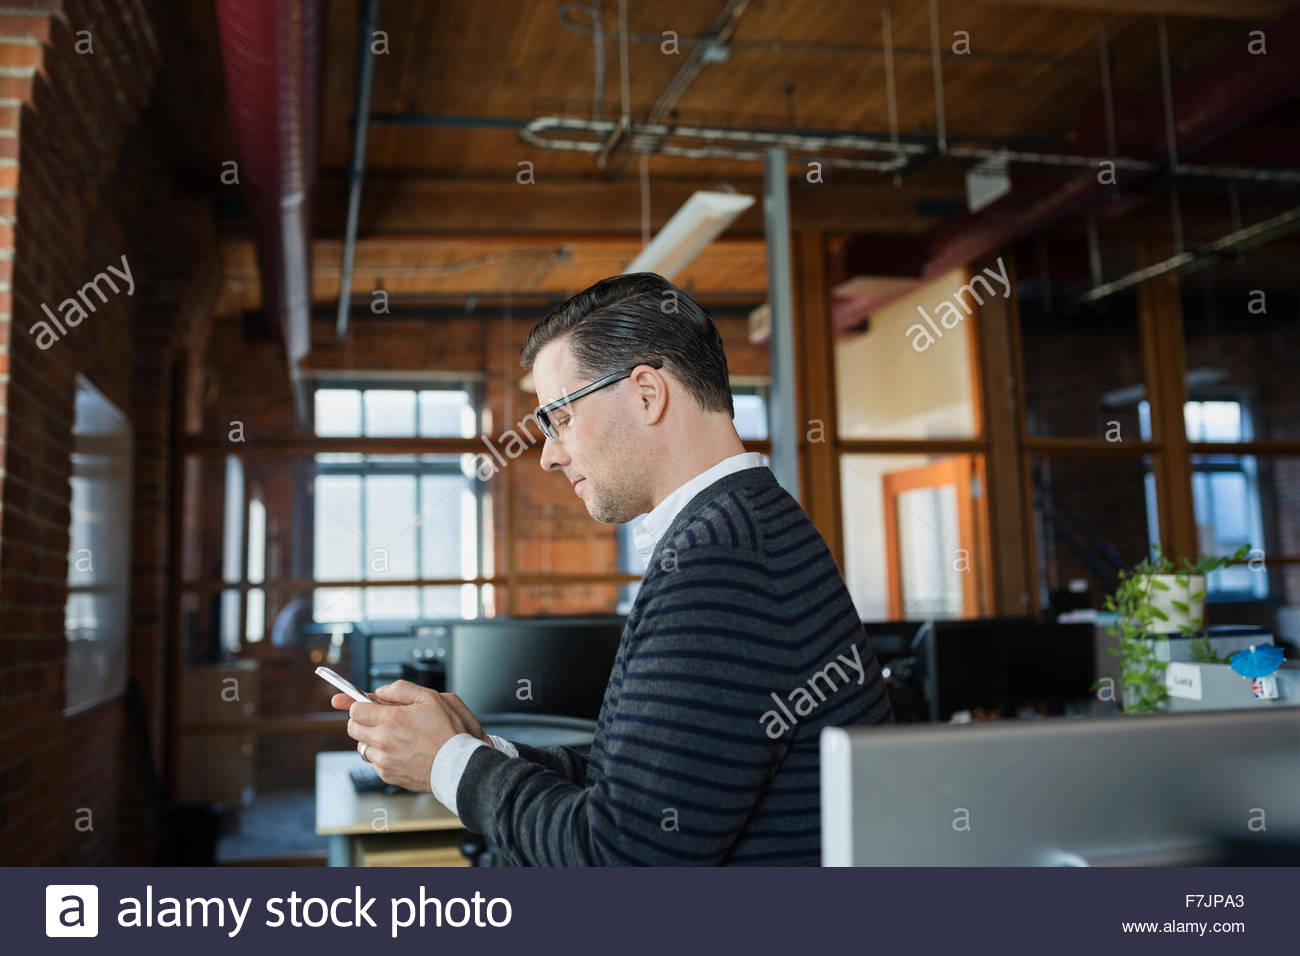 Businessman texting in office Photo Stock